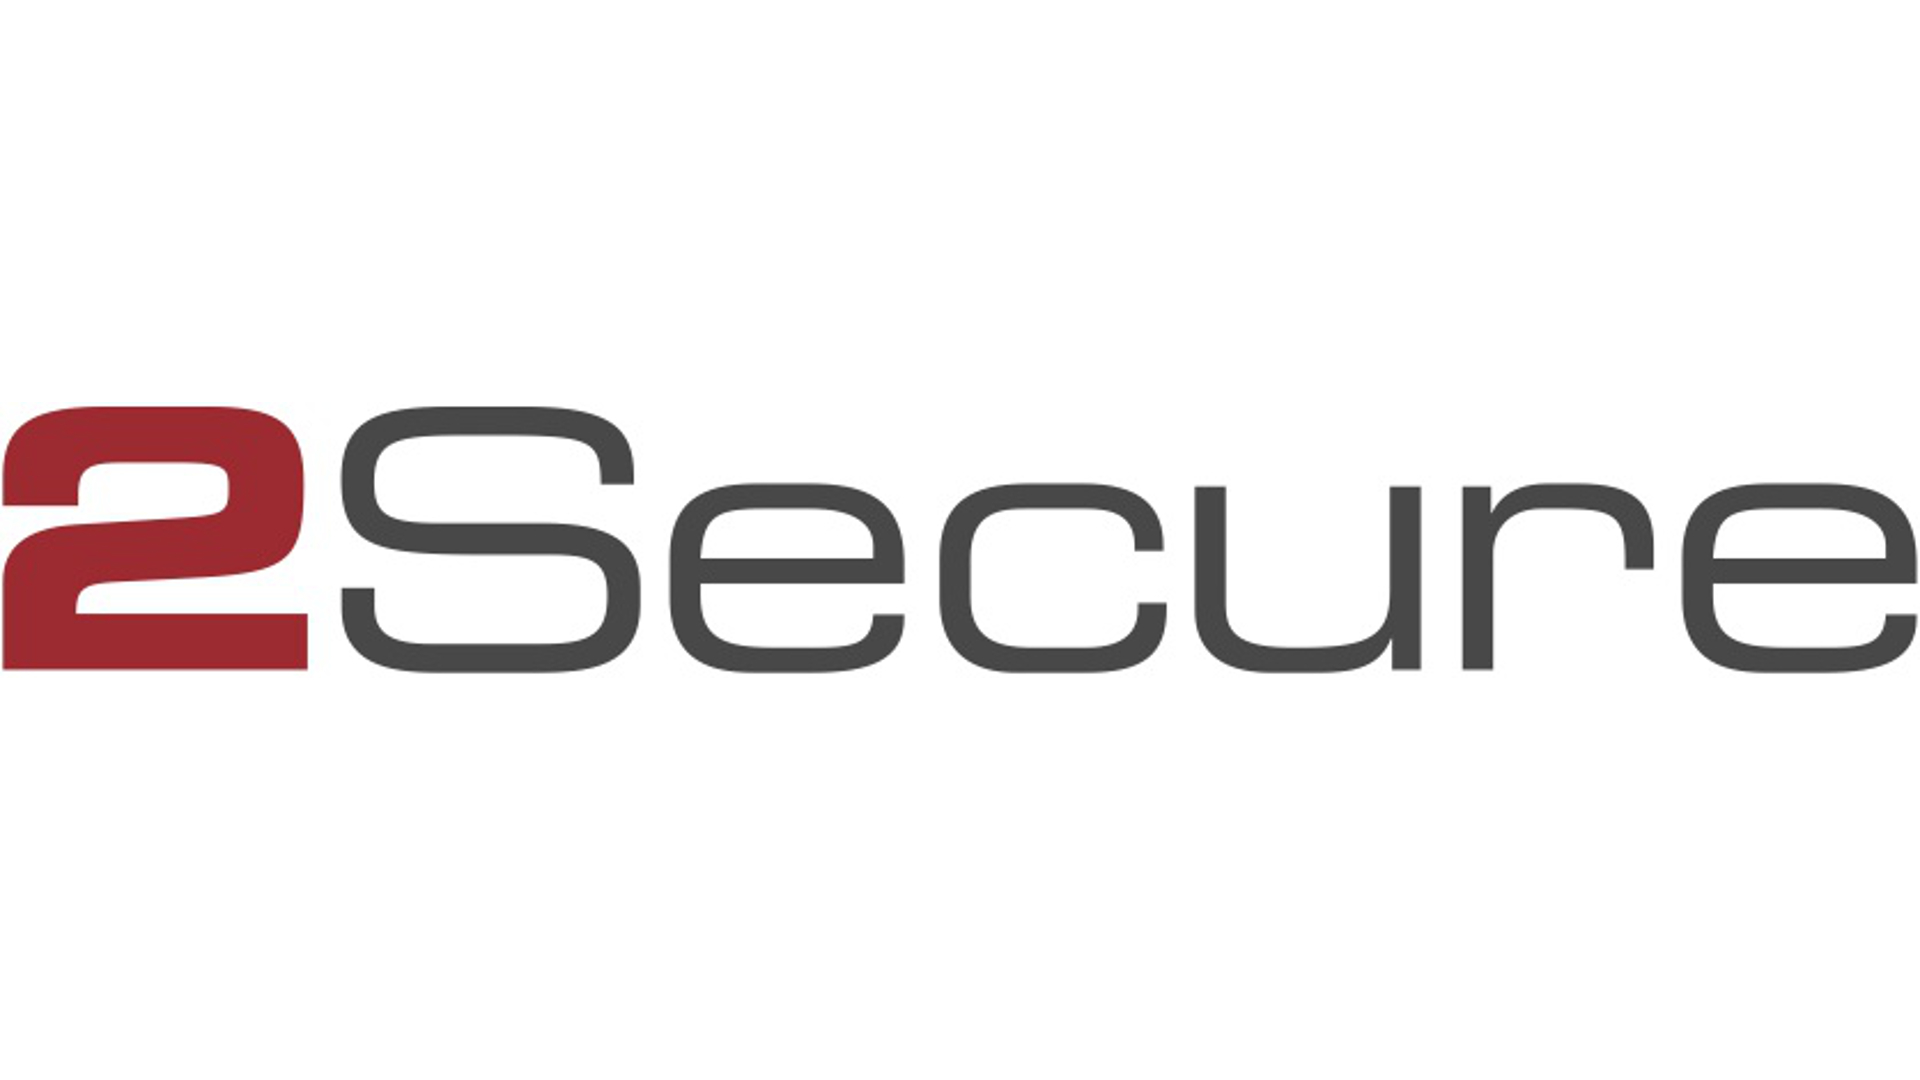 2secure